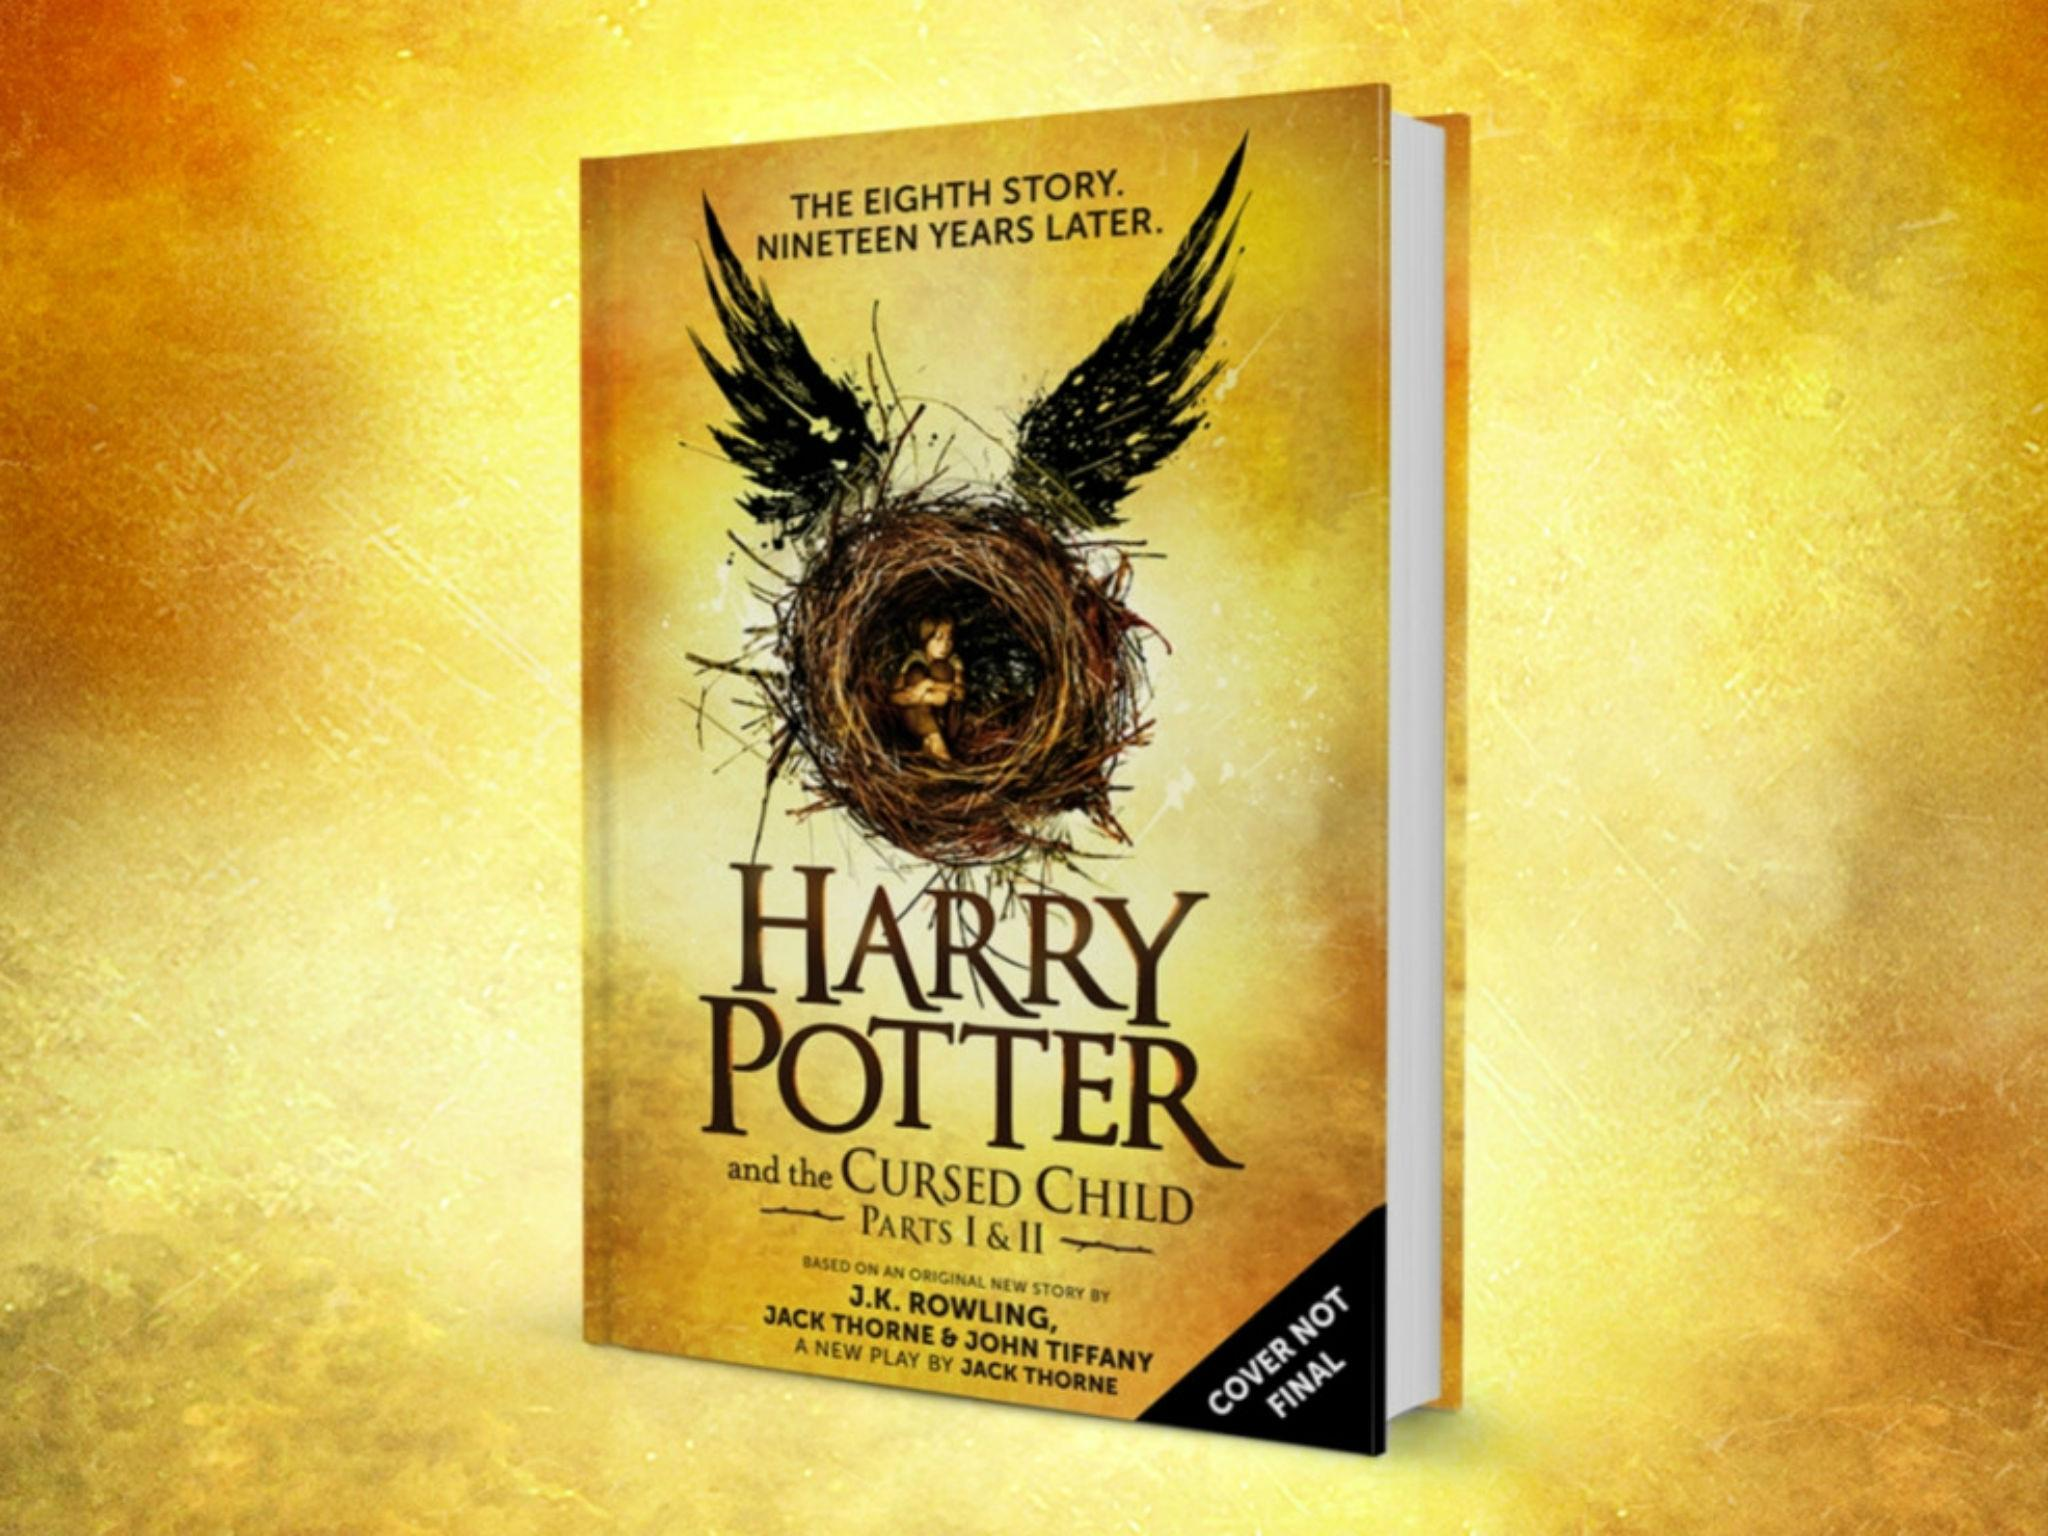 Are you excited for the new Harry Potter book and movie announcement (Harry Potter and the Cursed child)?